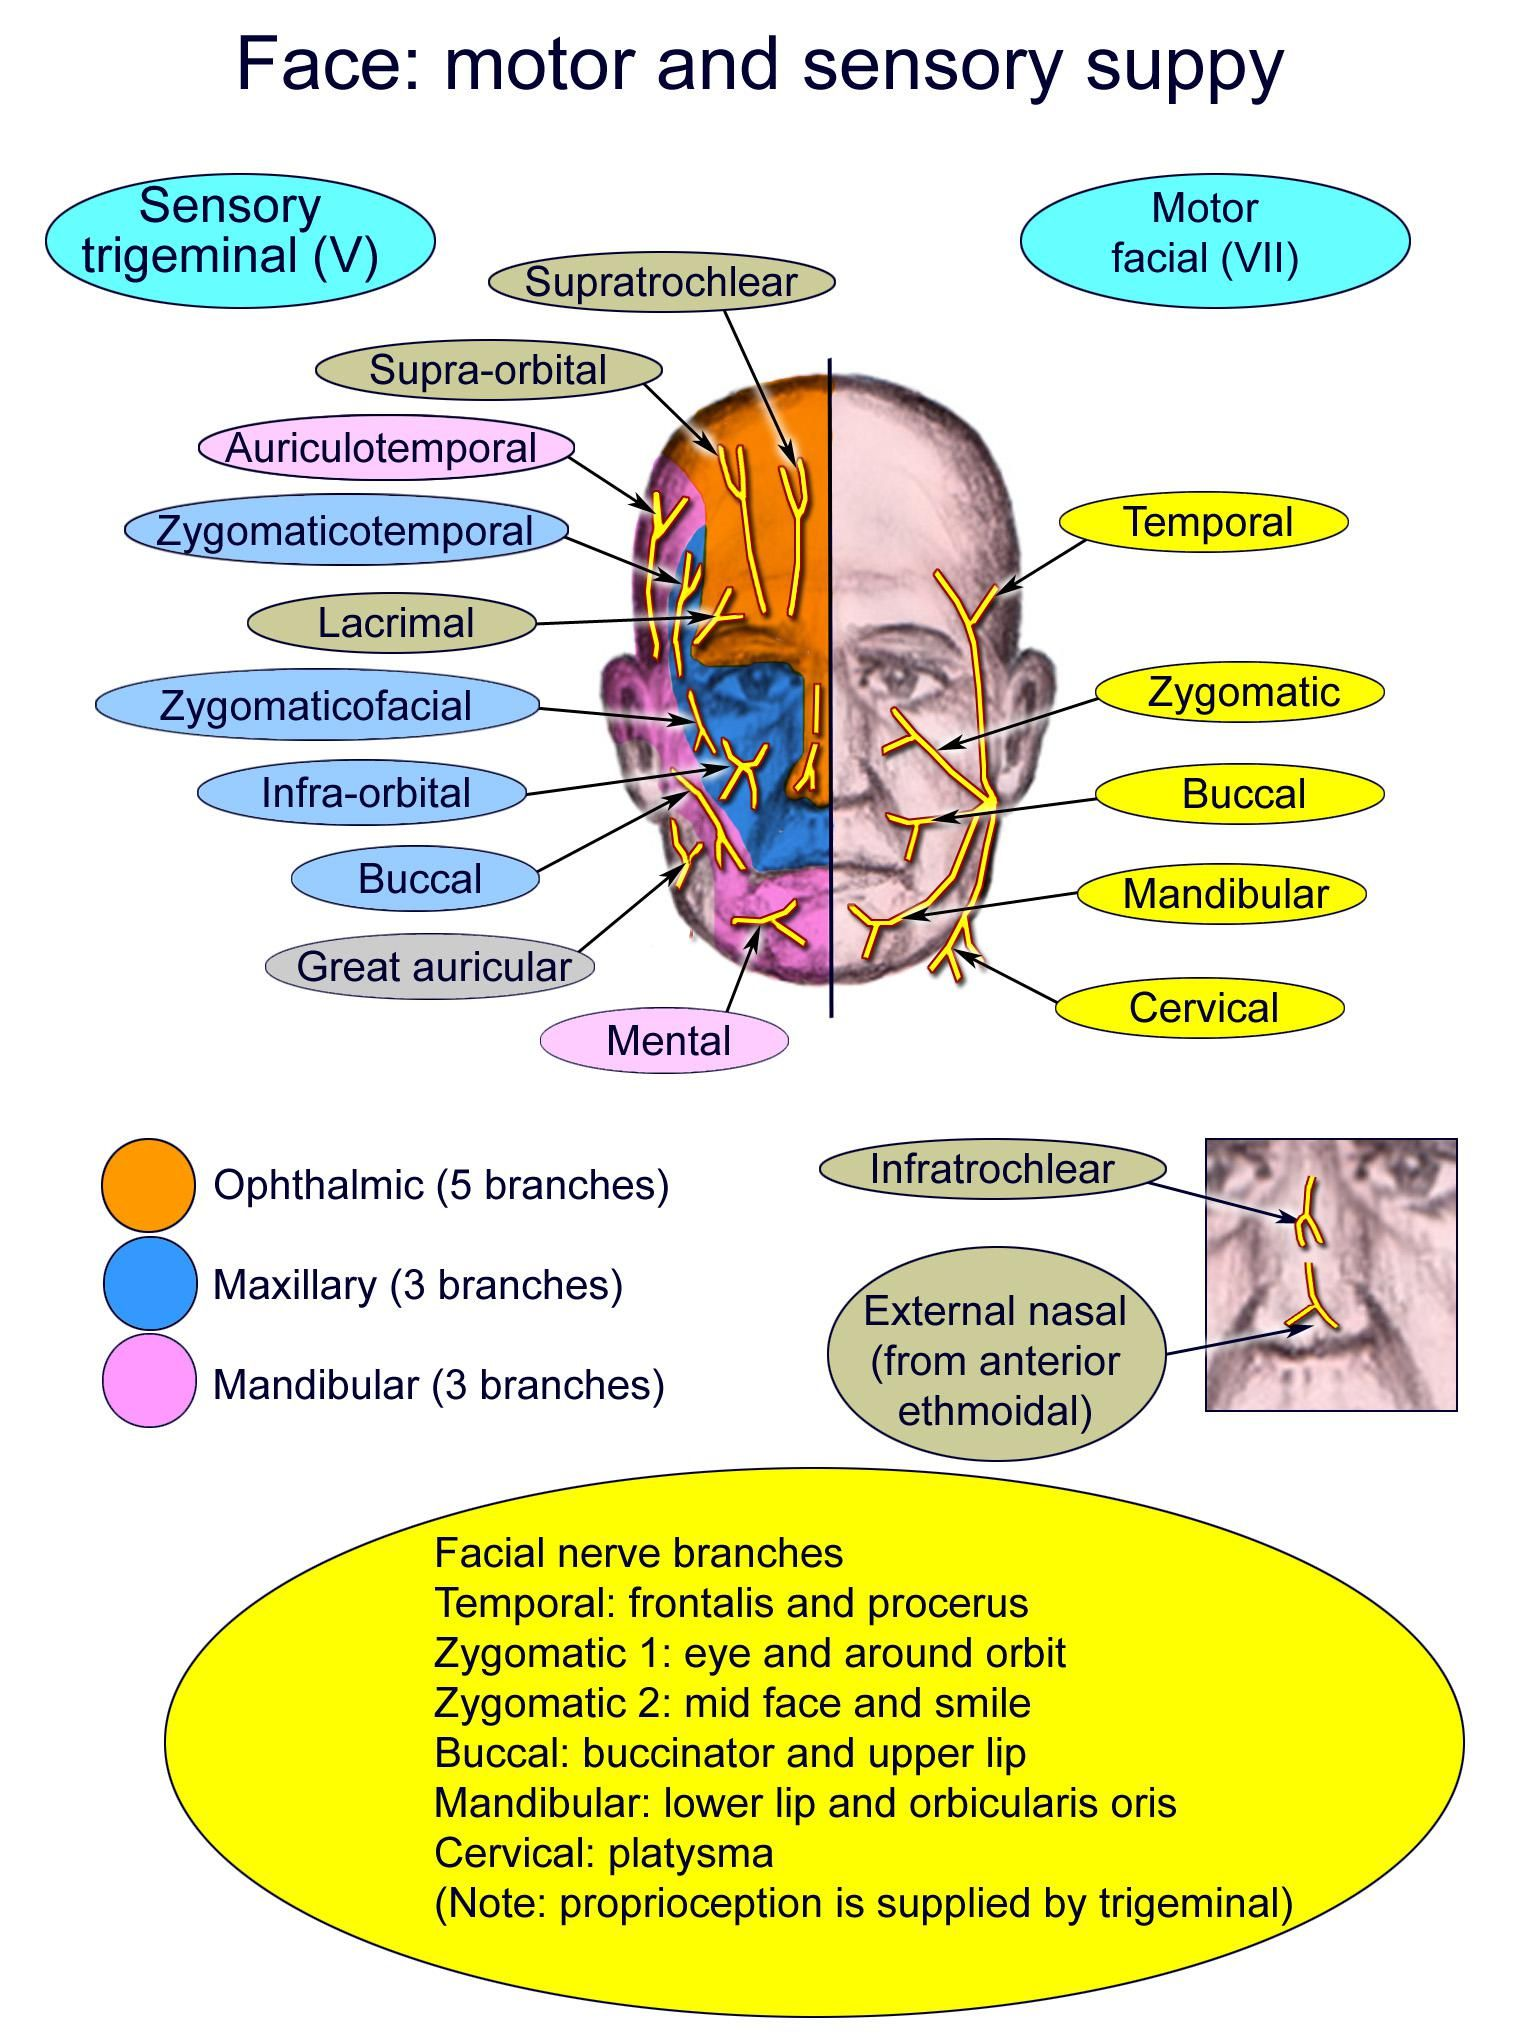 Diagram of the motor and sensory supply of face. | Dentistry ...